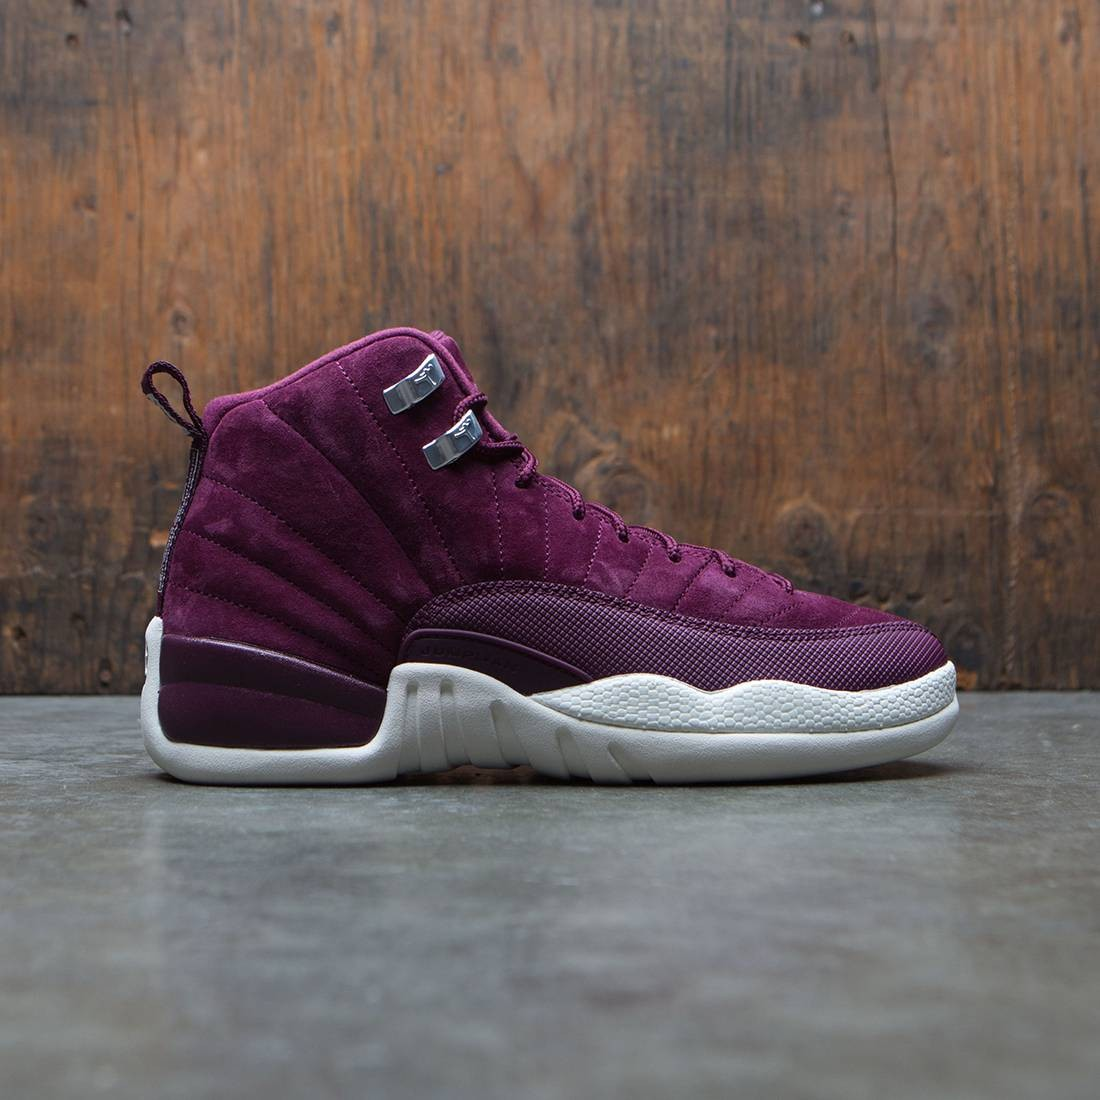 Air Jordan 12 Retro (GS) Big Kids (burgundy / bordeaux / sail-metallic silver)